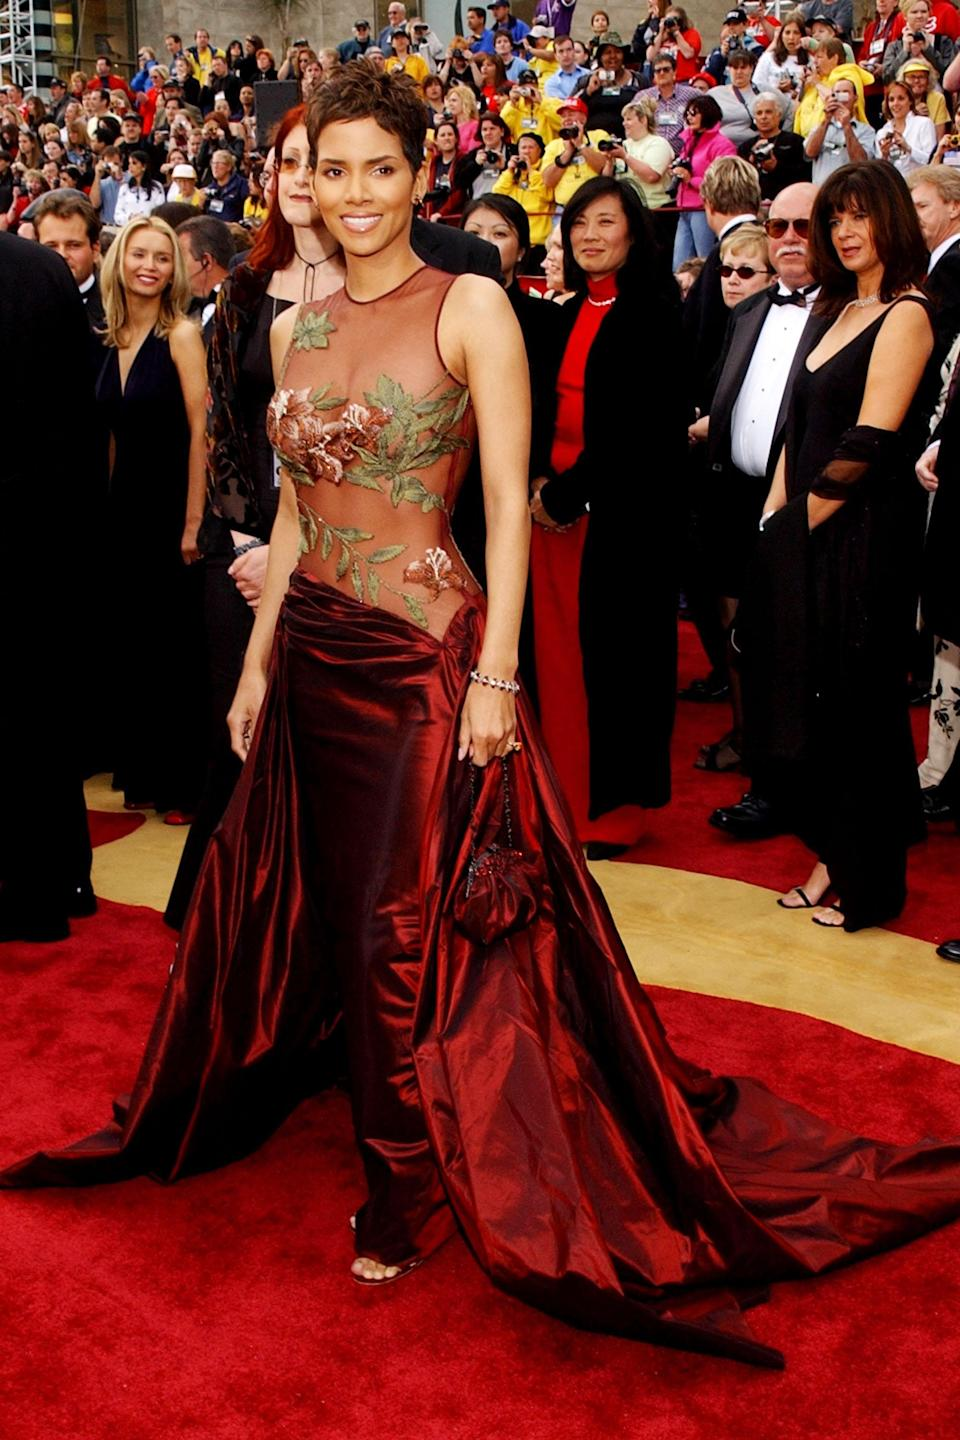 """<h2>Halle Berry, 2002</h2><br>To become the first Black woman to win Best Actress, Halle Berry eliminated her competition — both on the red carpet and the stage — in this Elie Saab gown.<br><br><em>Halle Berry in Elie Saab.</em><span class=""""copyright"""">Photo: Kevin Mazur/WireImage/Getty Images. </span>"""